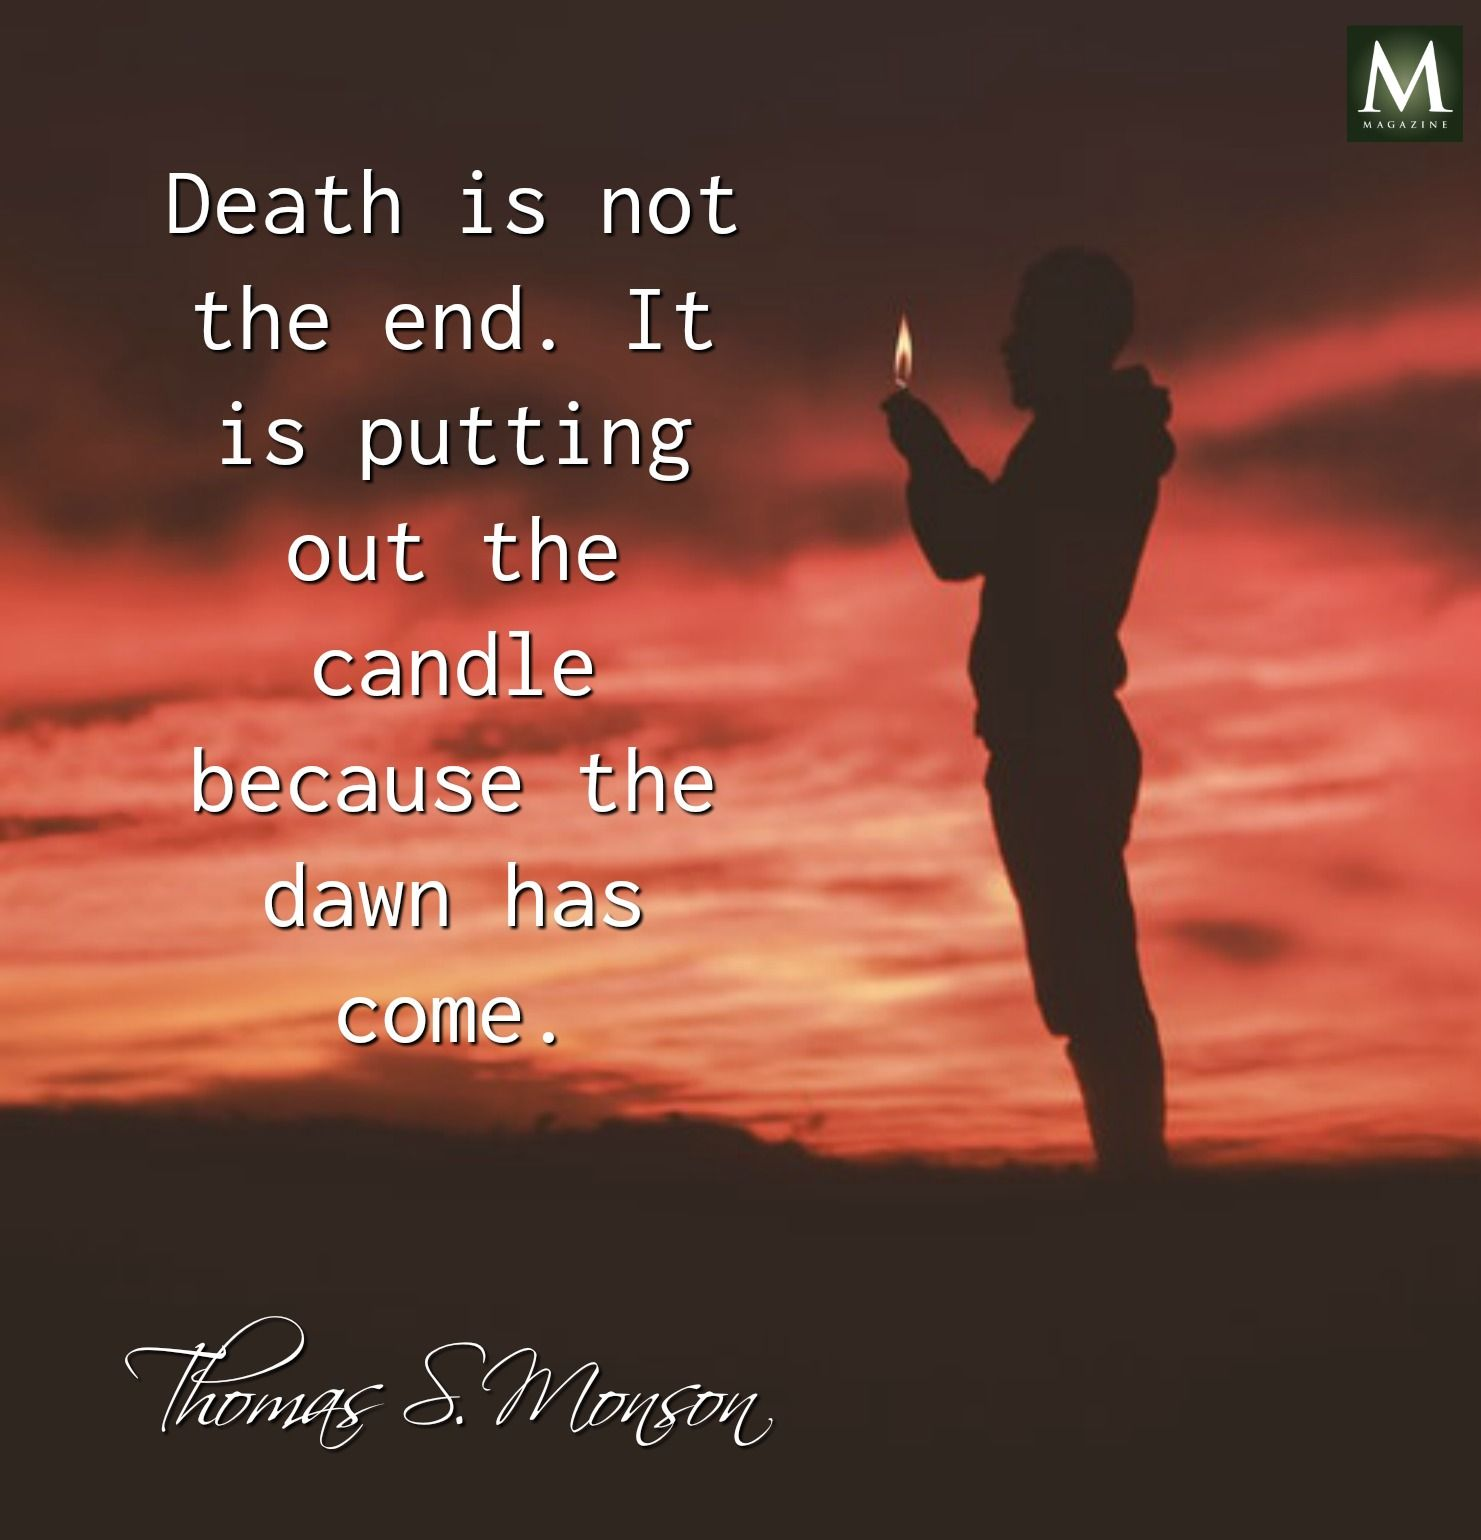 Death is not the end it is putting out the candle because the dawn